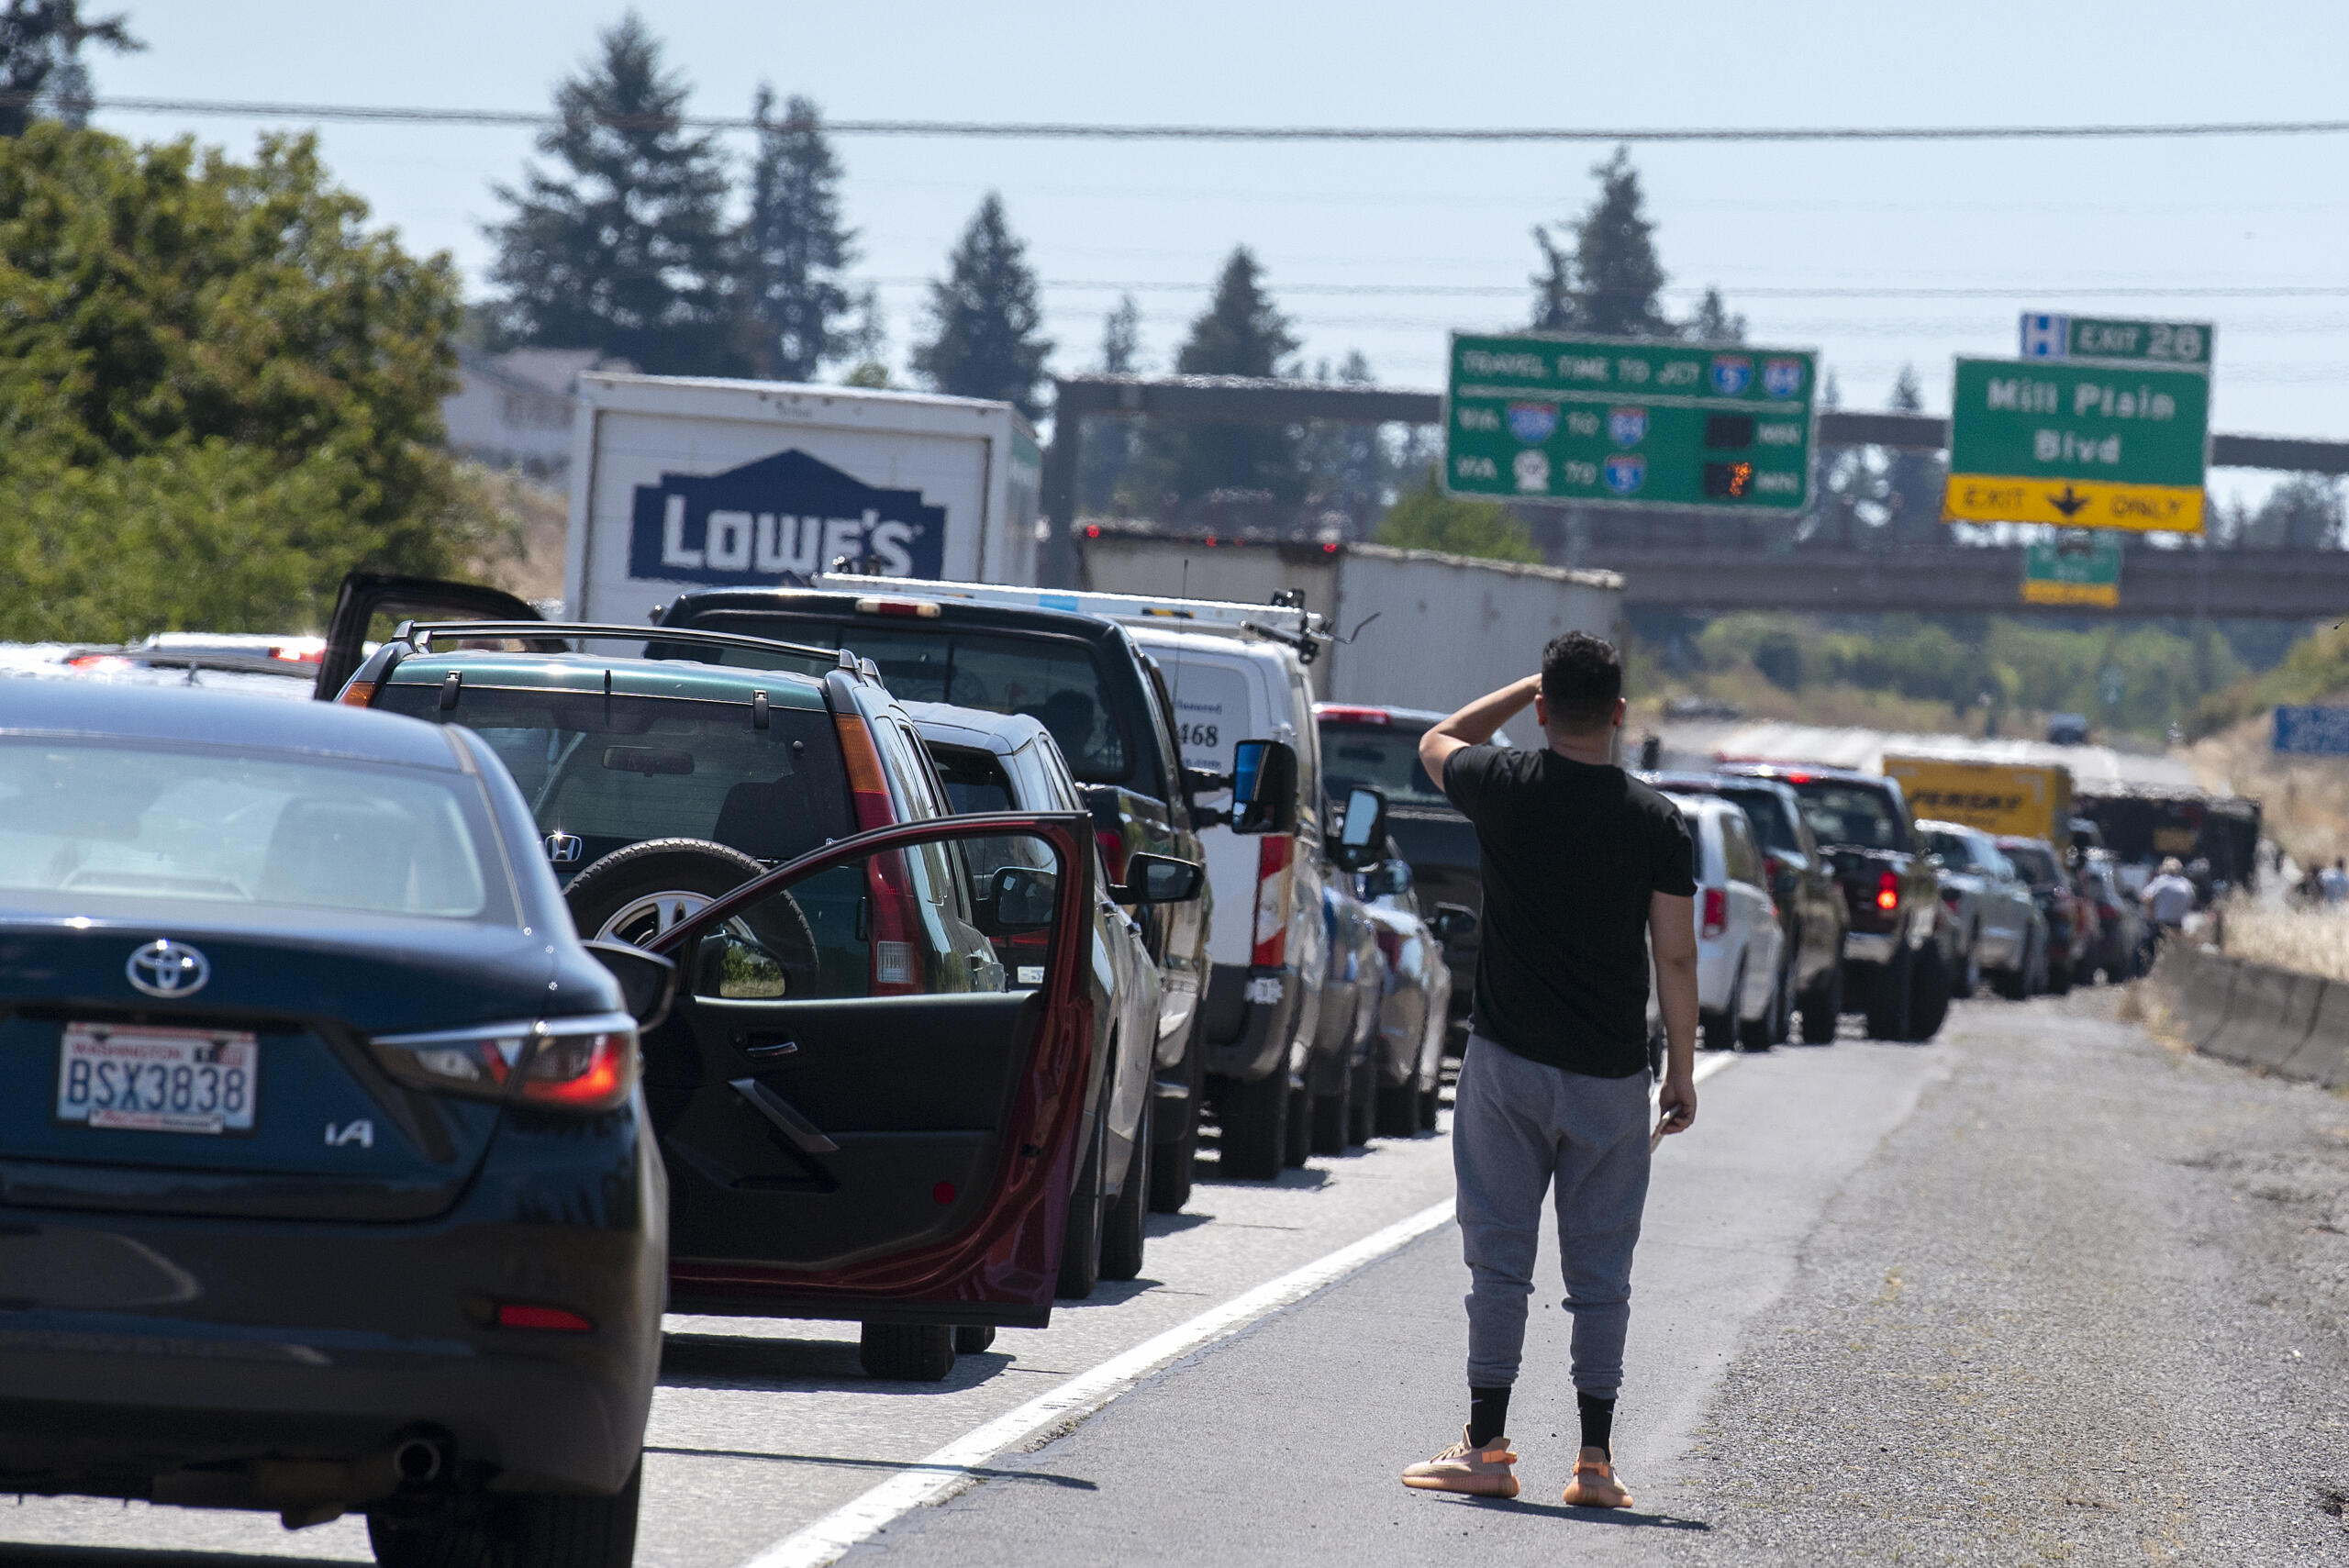 A motorist stuck in the southbound lanes of Interstate 205 near the Mill Plain Boulevard exit checks out the accident scene on Friday afternoon, July 9, 2021.